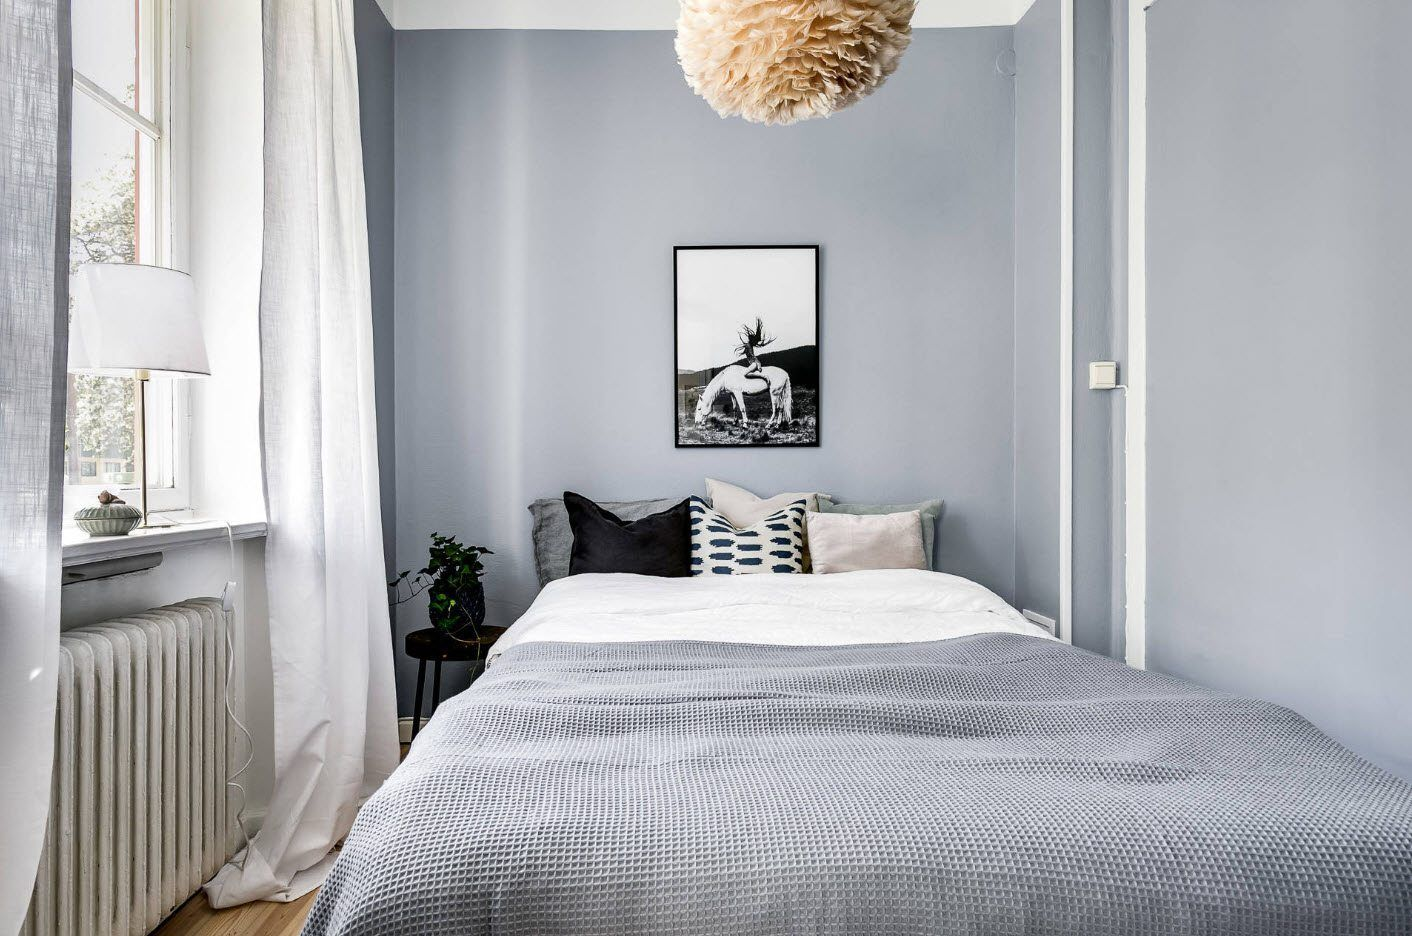 120 Square Feet Bedroom Interior Decoration Ideas. Relaxing atmosphere of the gray room with lace shade of the chandelier